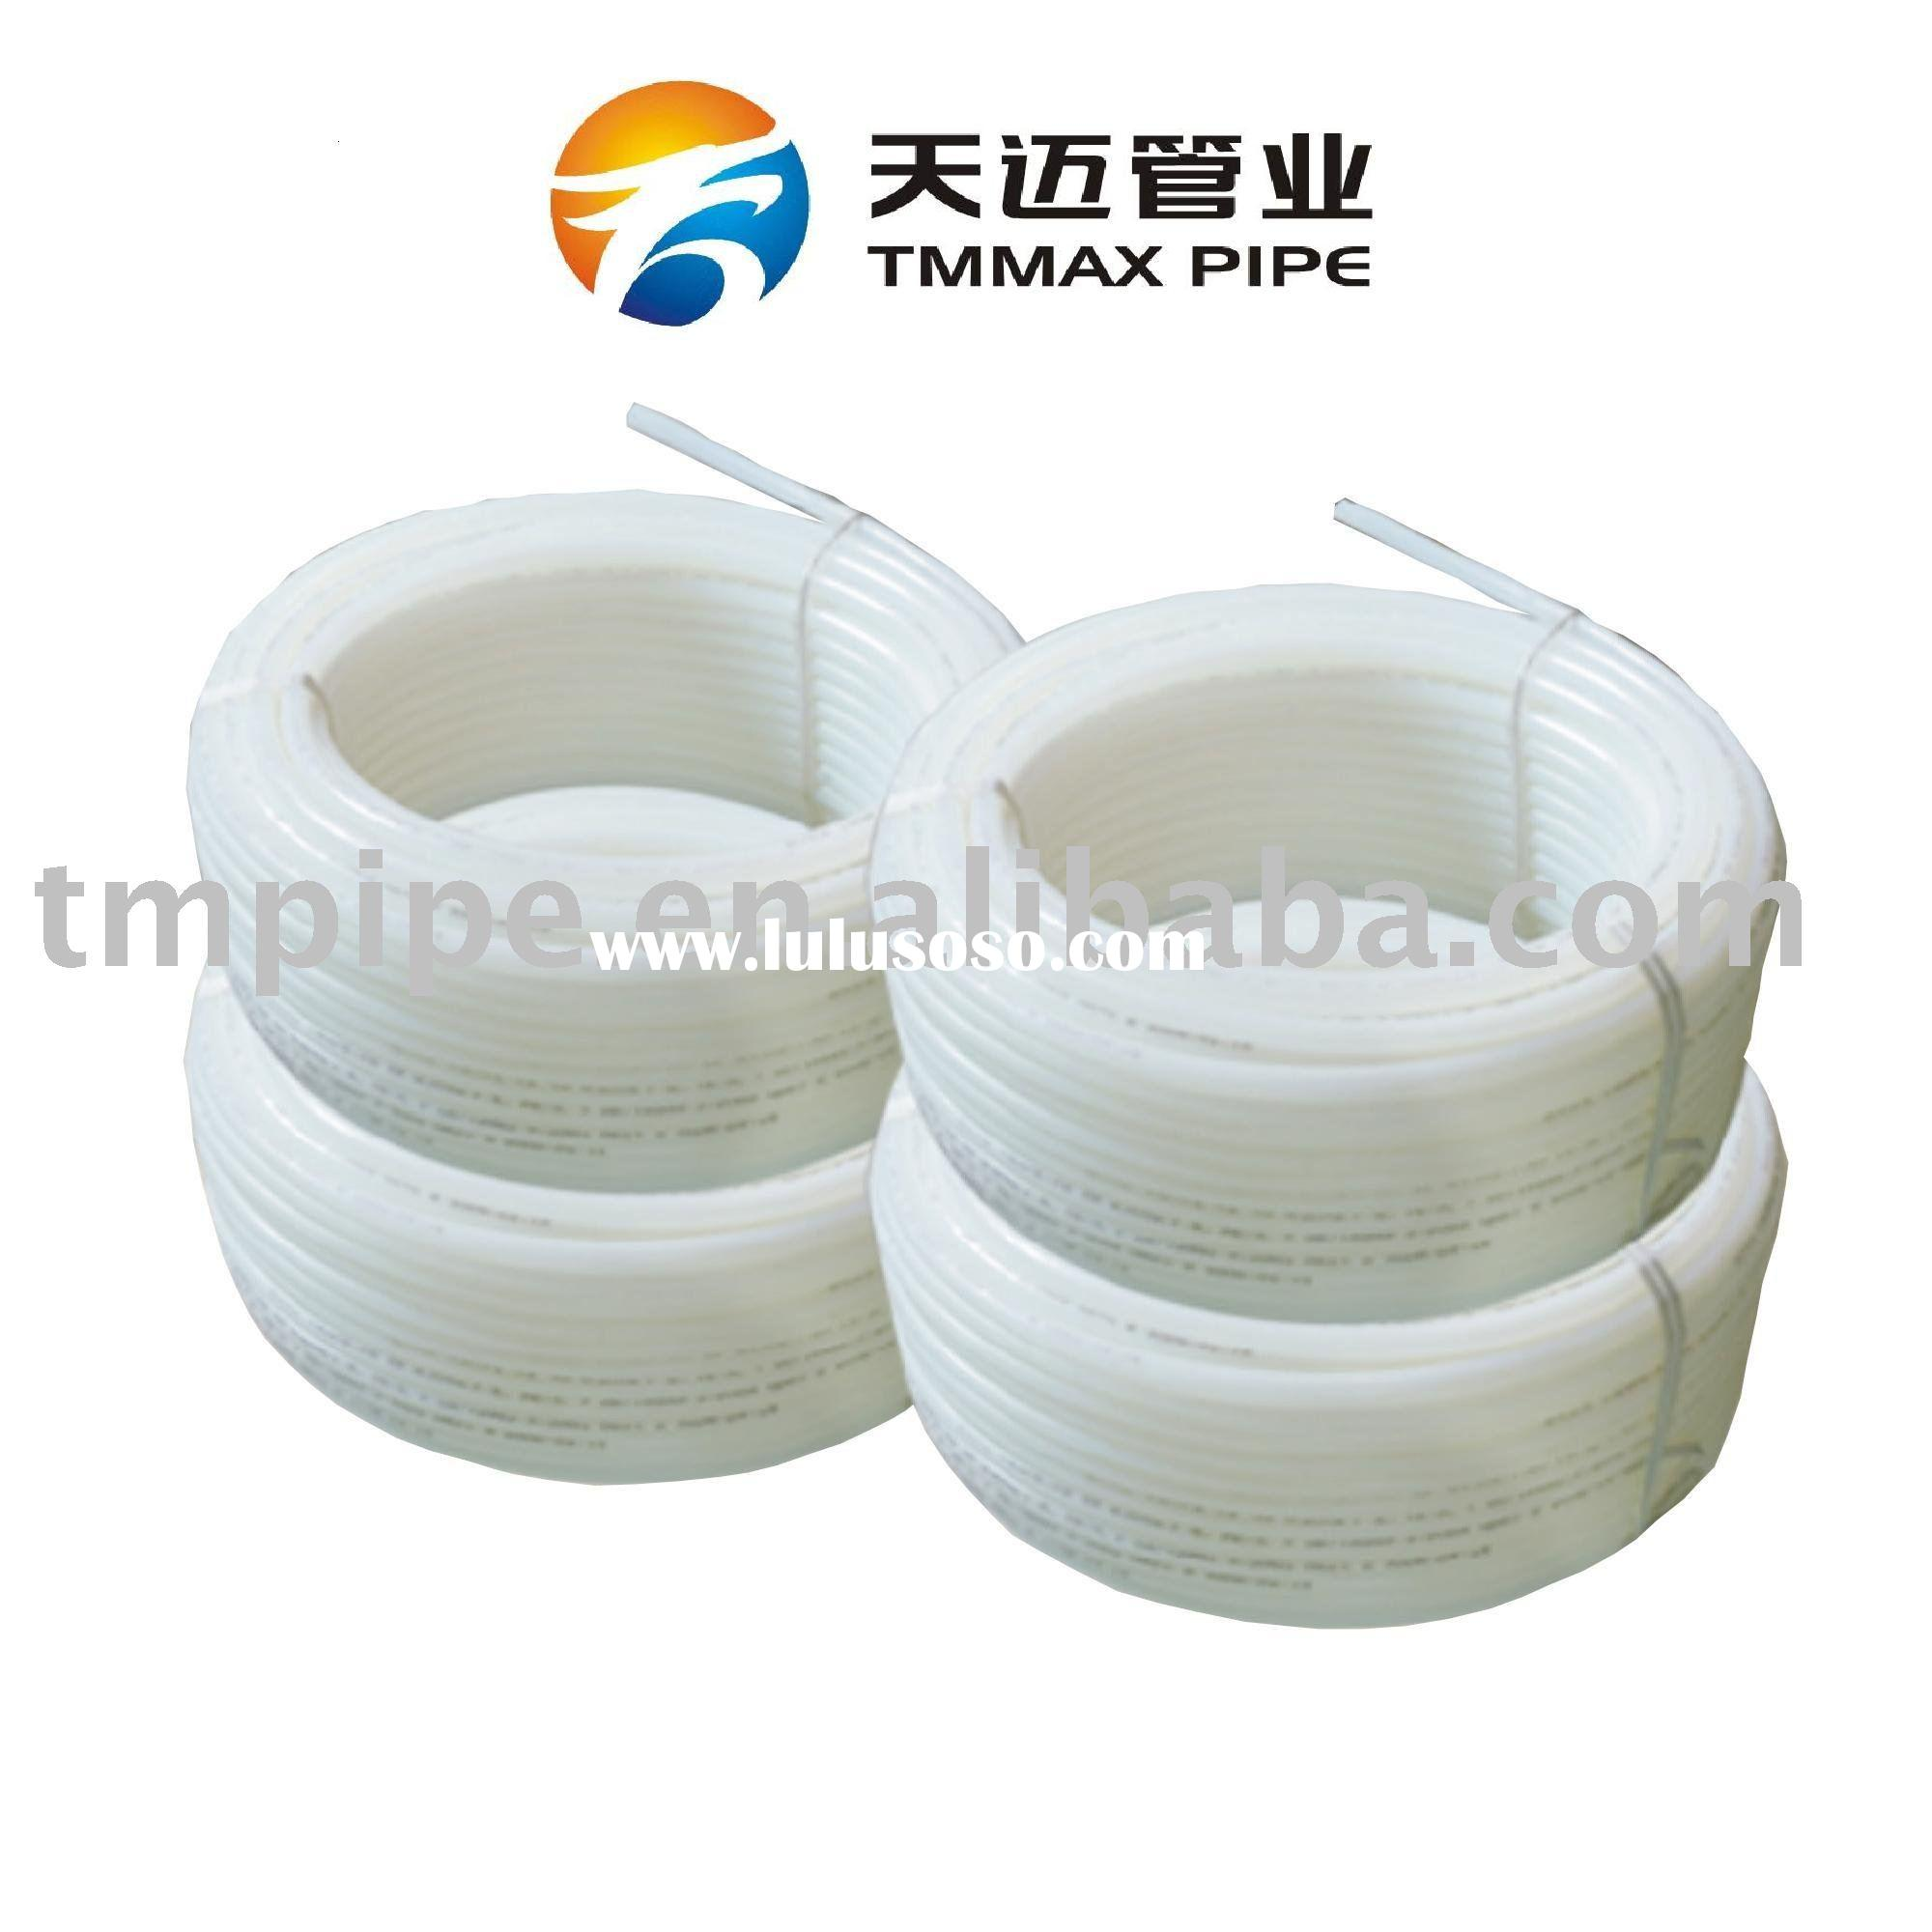 Polyethylene Of Raised Temperature Resistance Pipes For Floor Radiant Heating